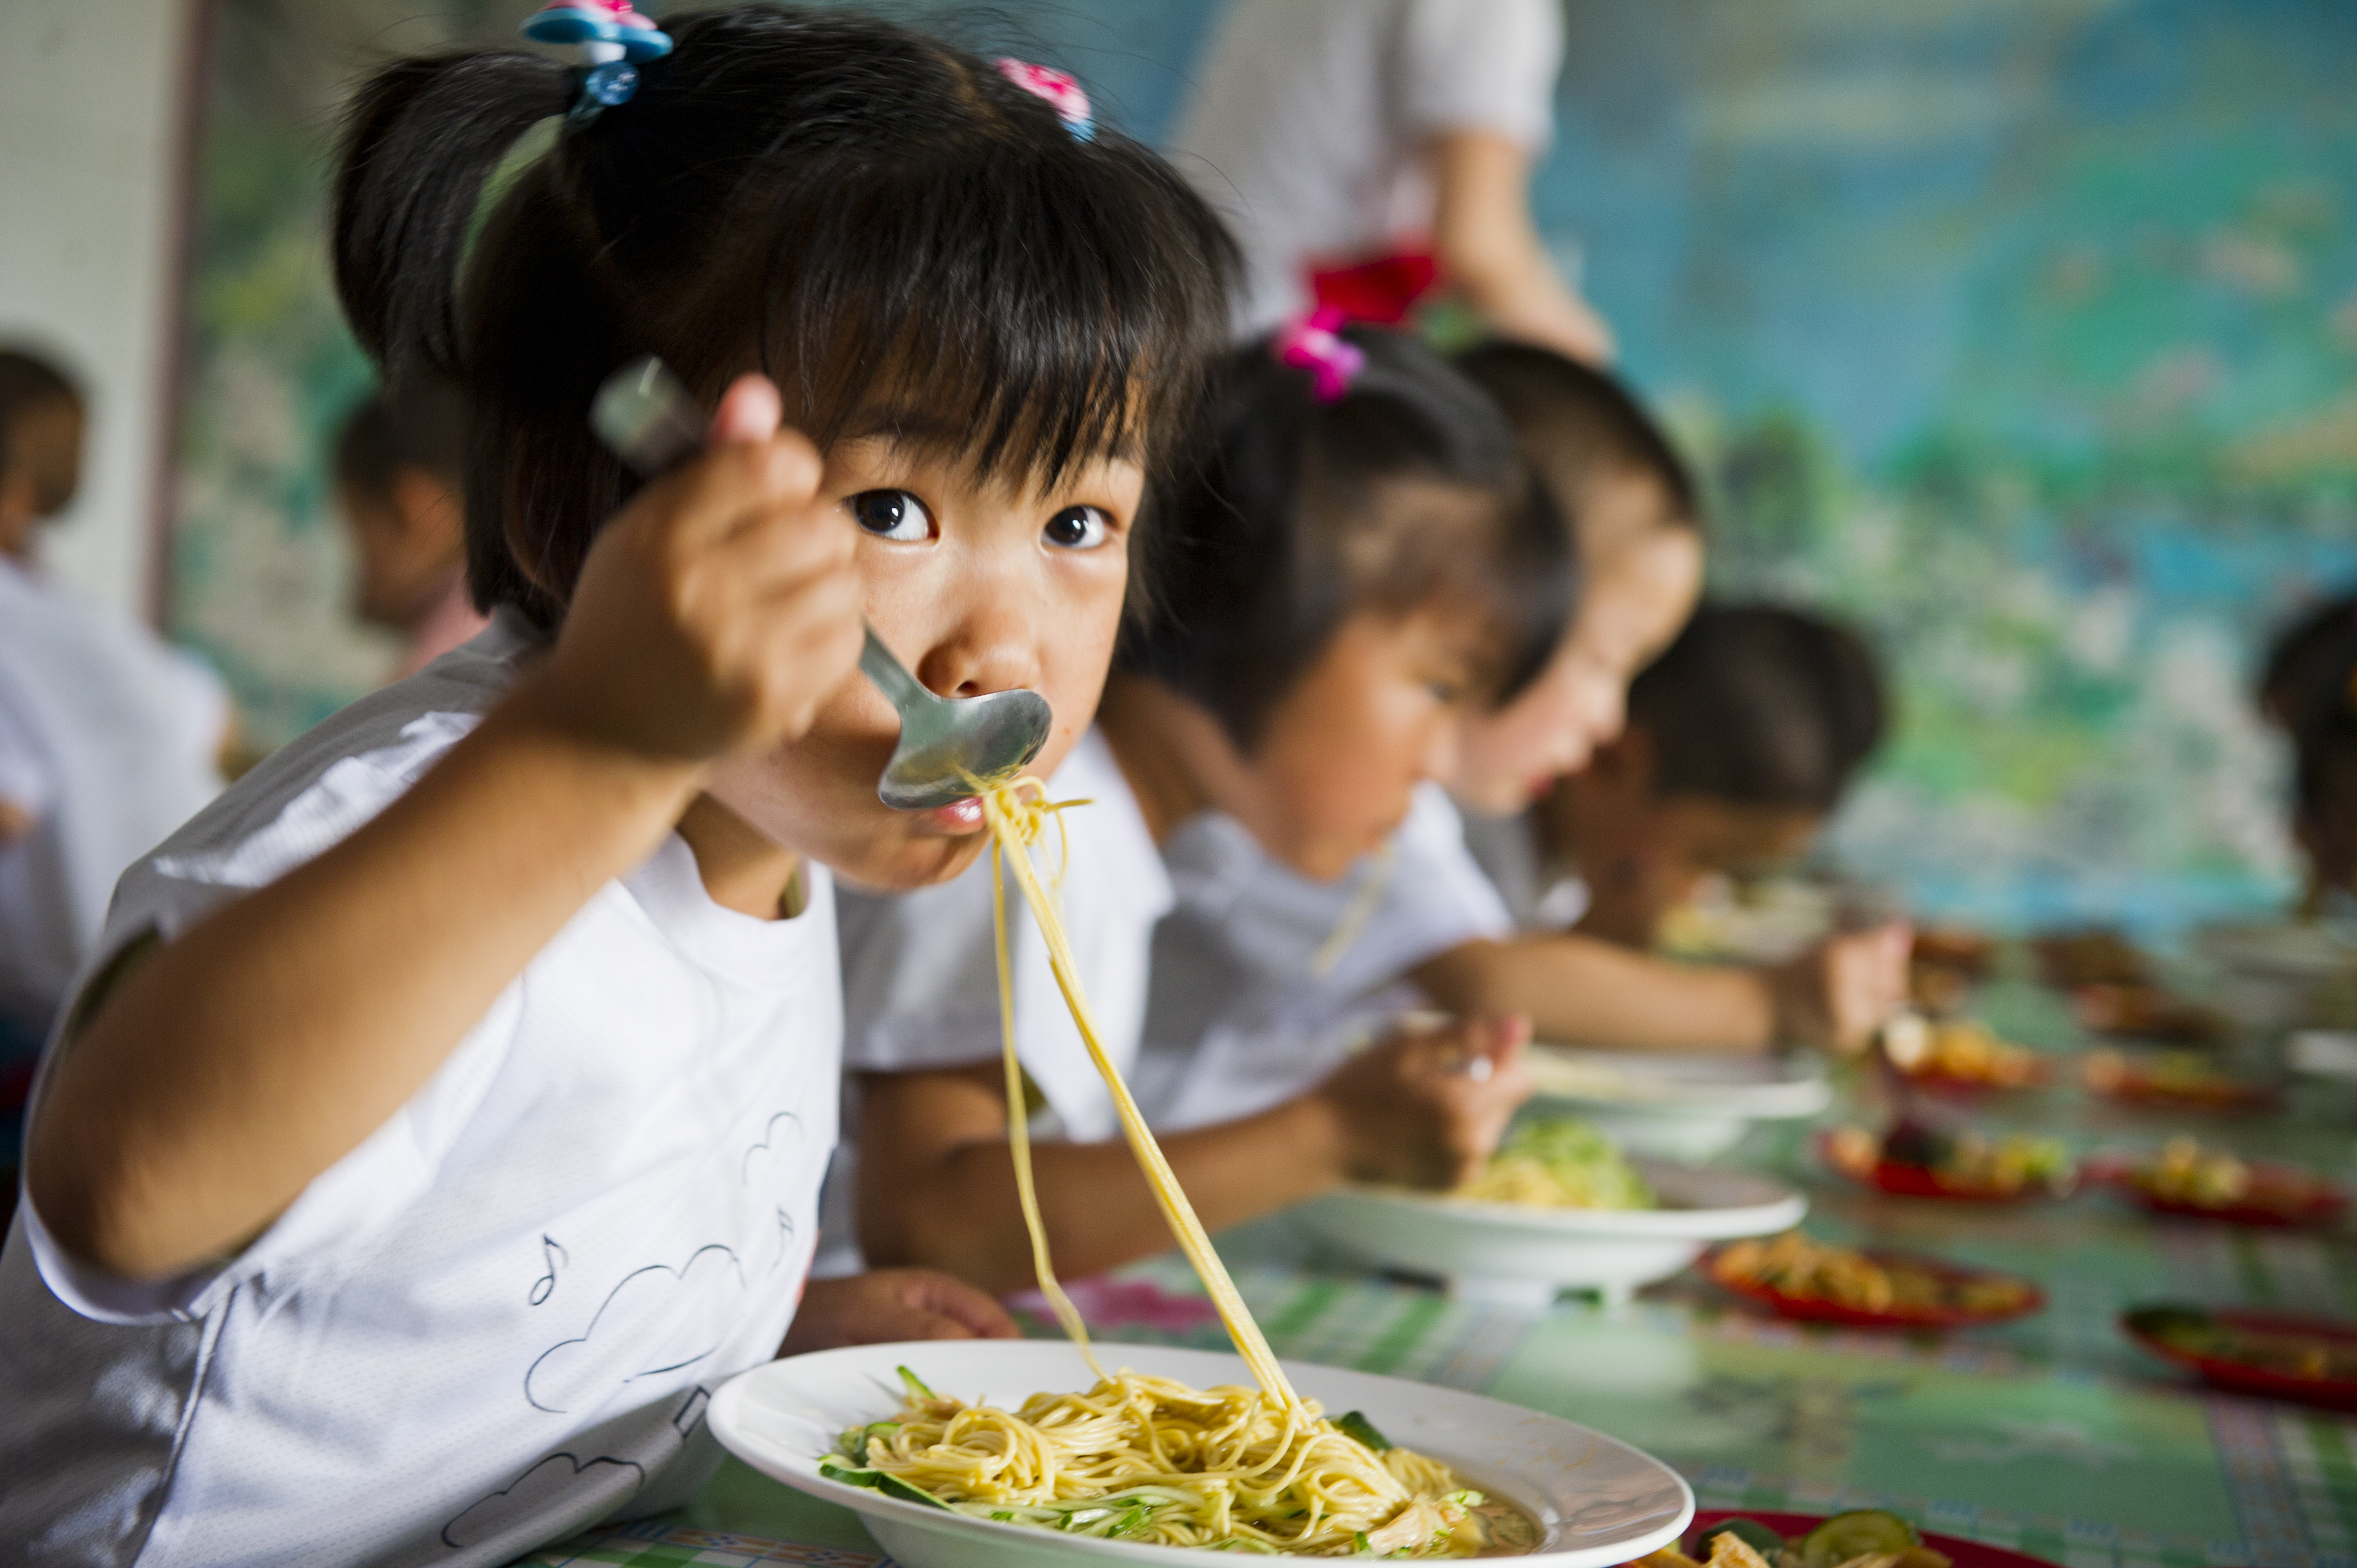 A young girl slurps her meal of noodles